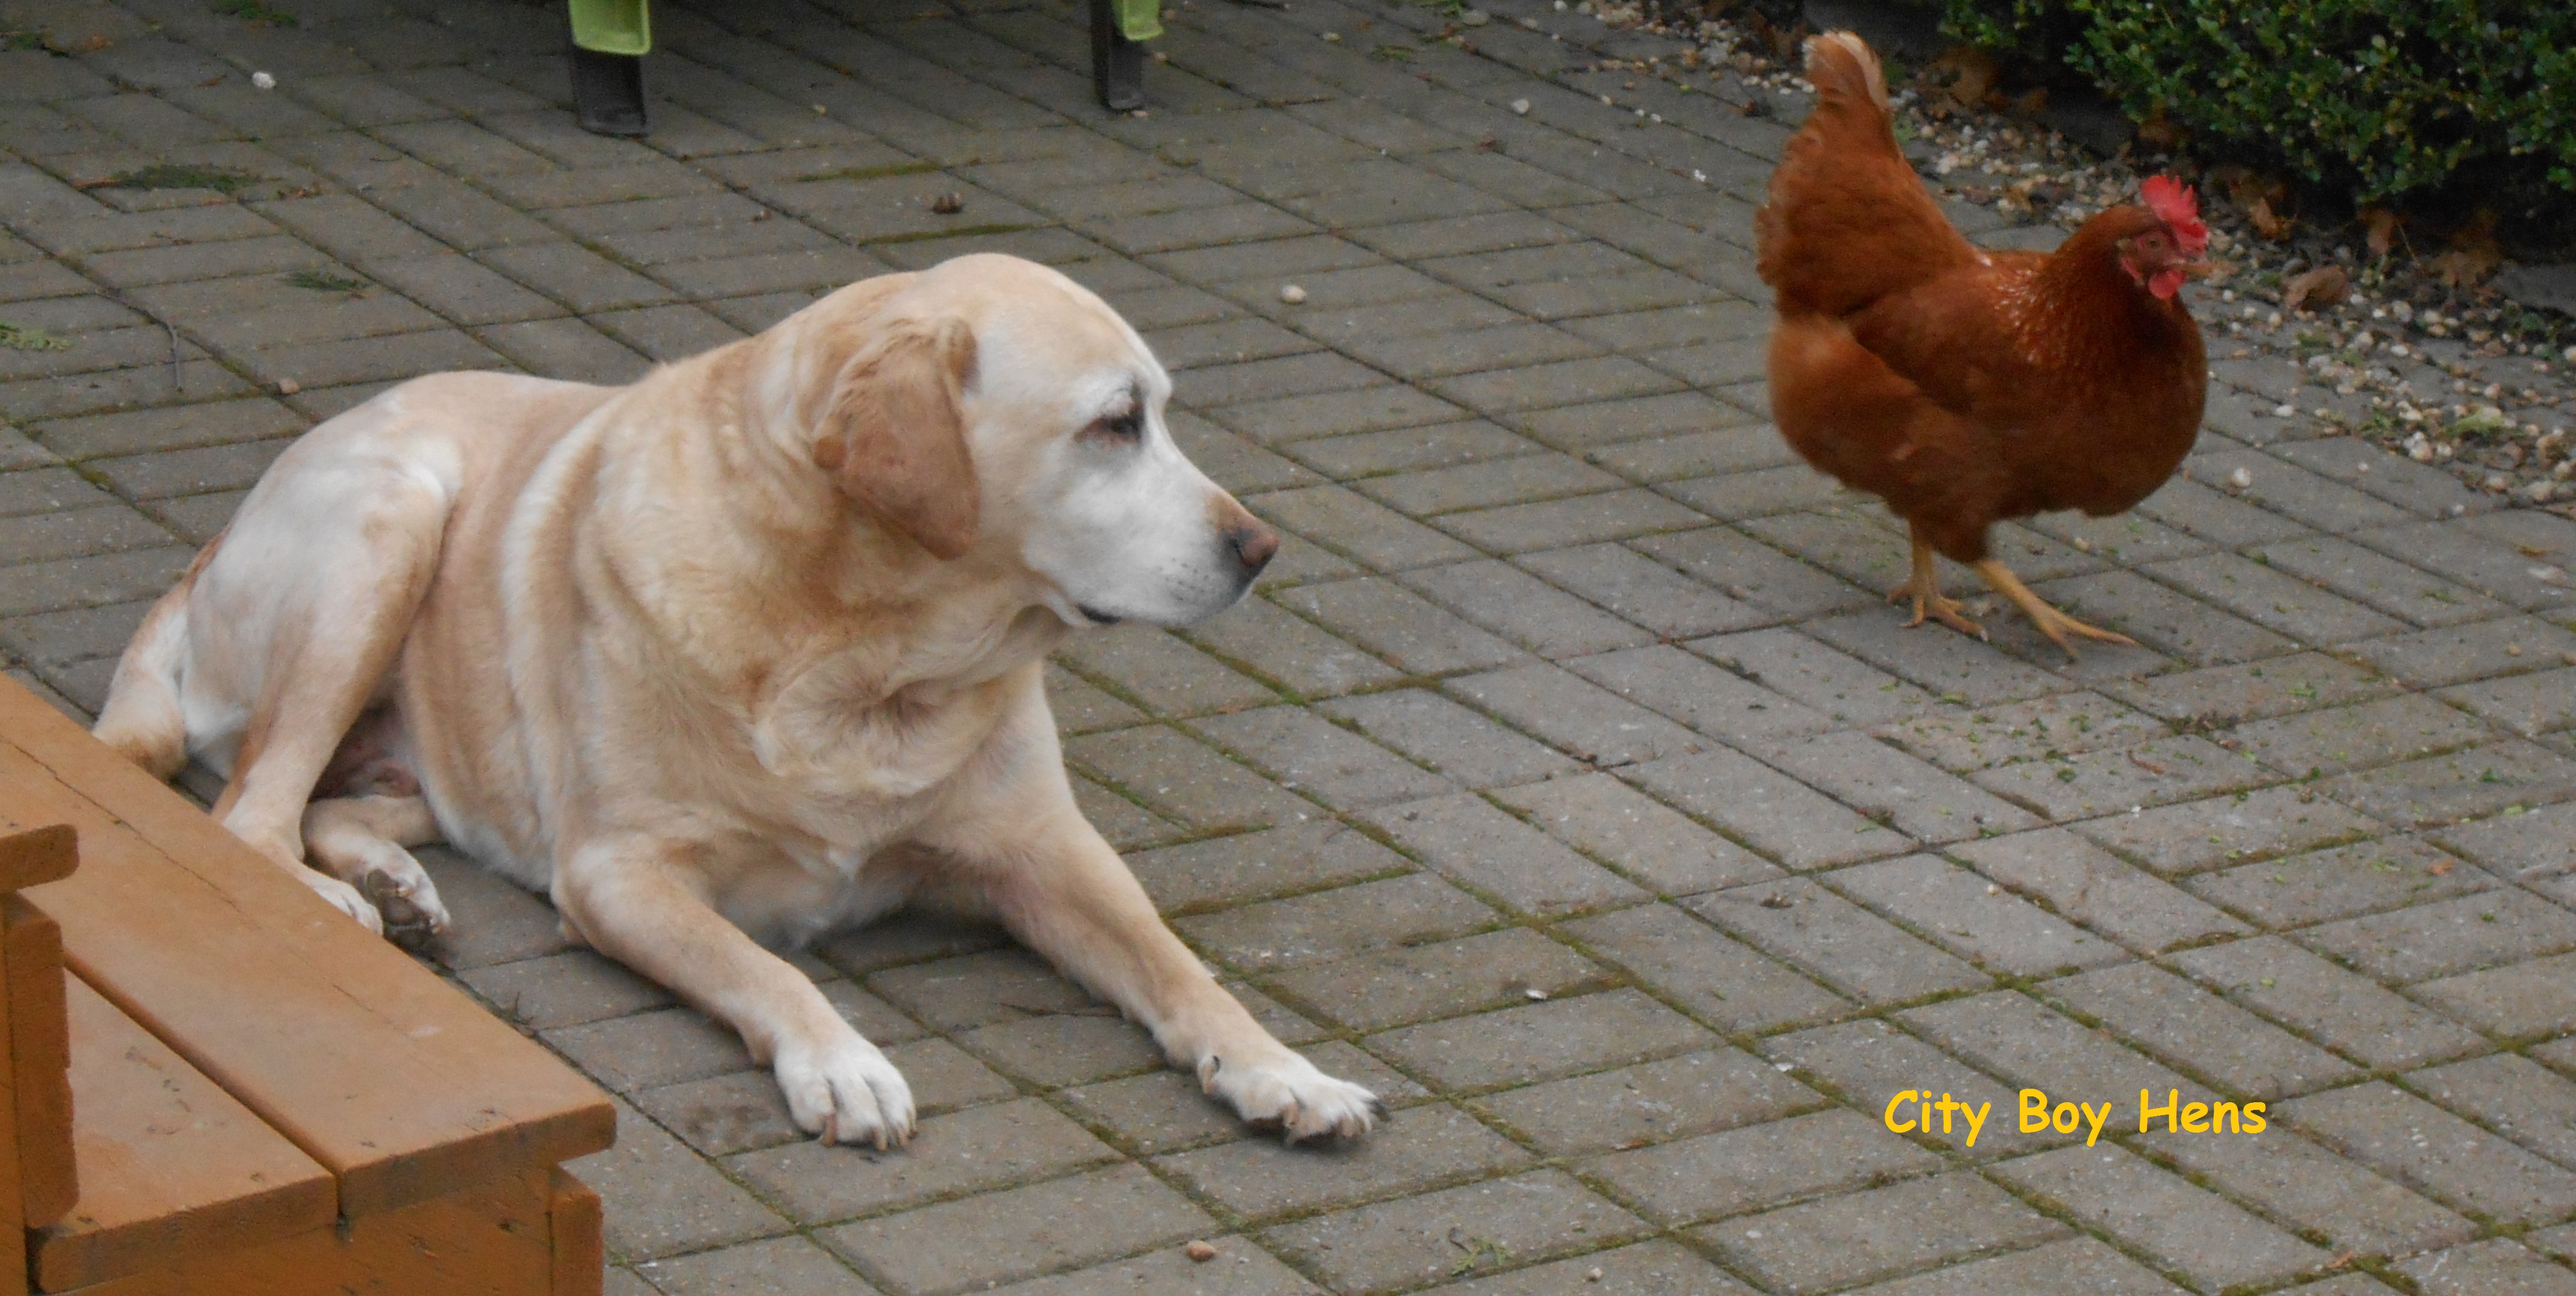 Training Your Dog With Chickens City Boy Hens